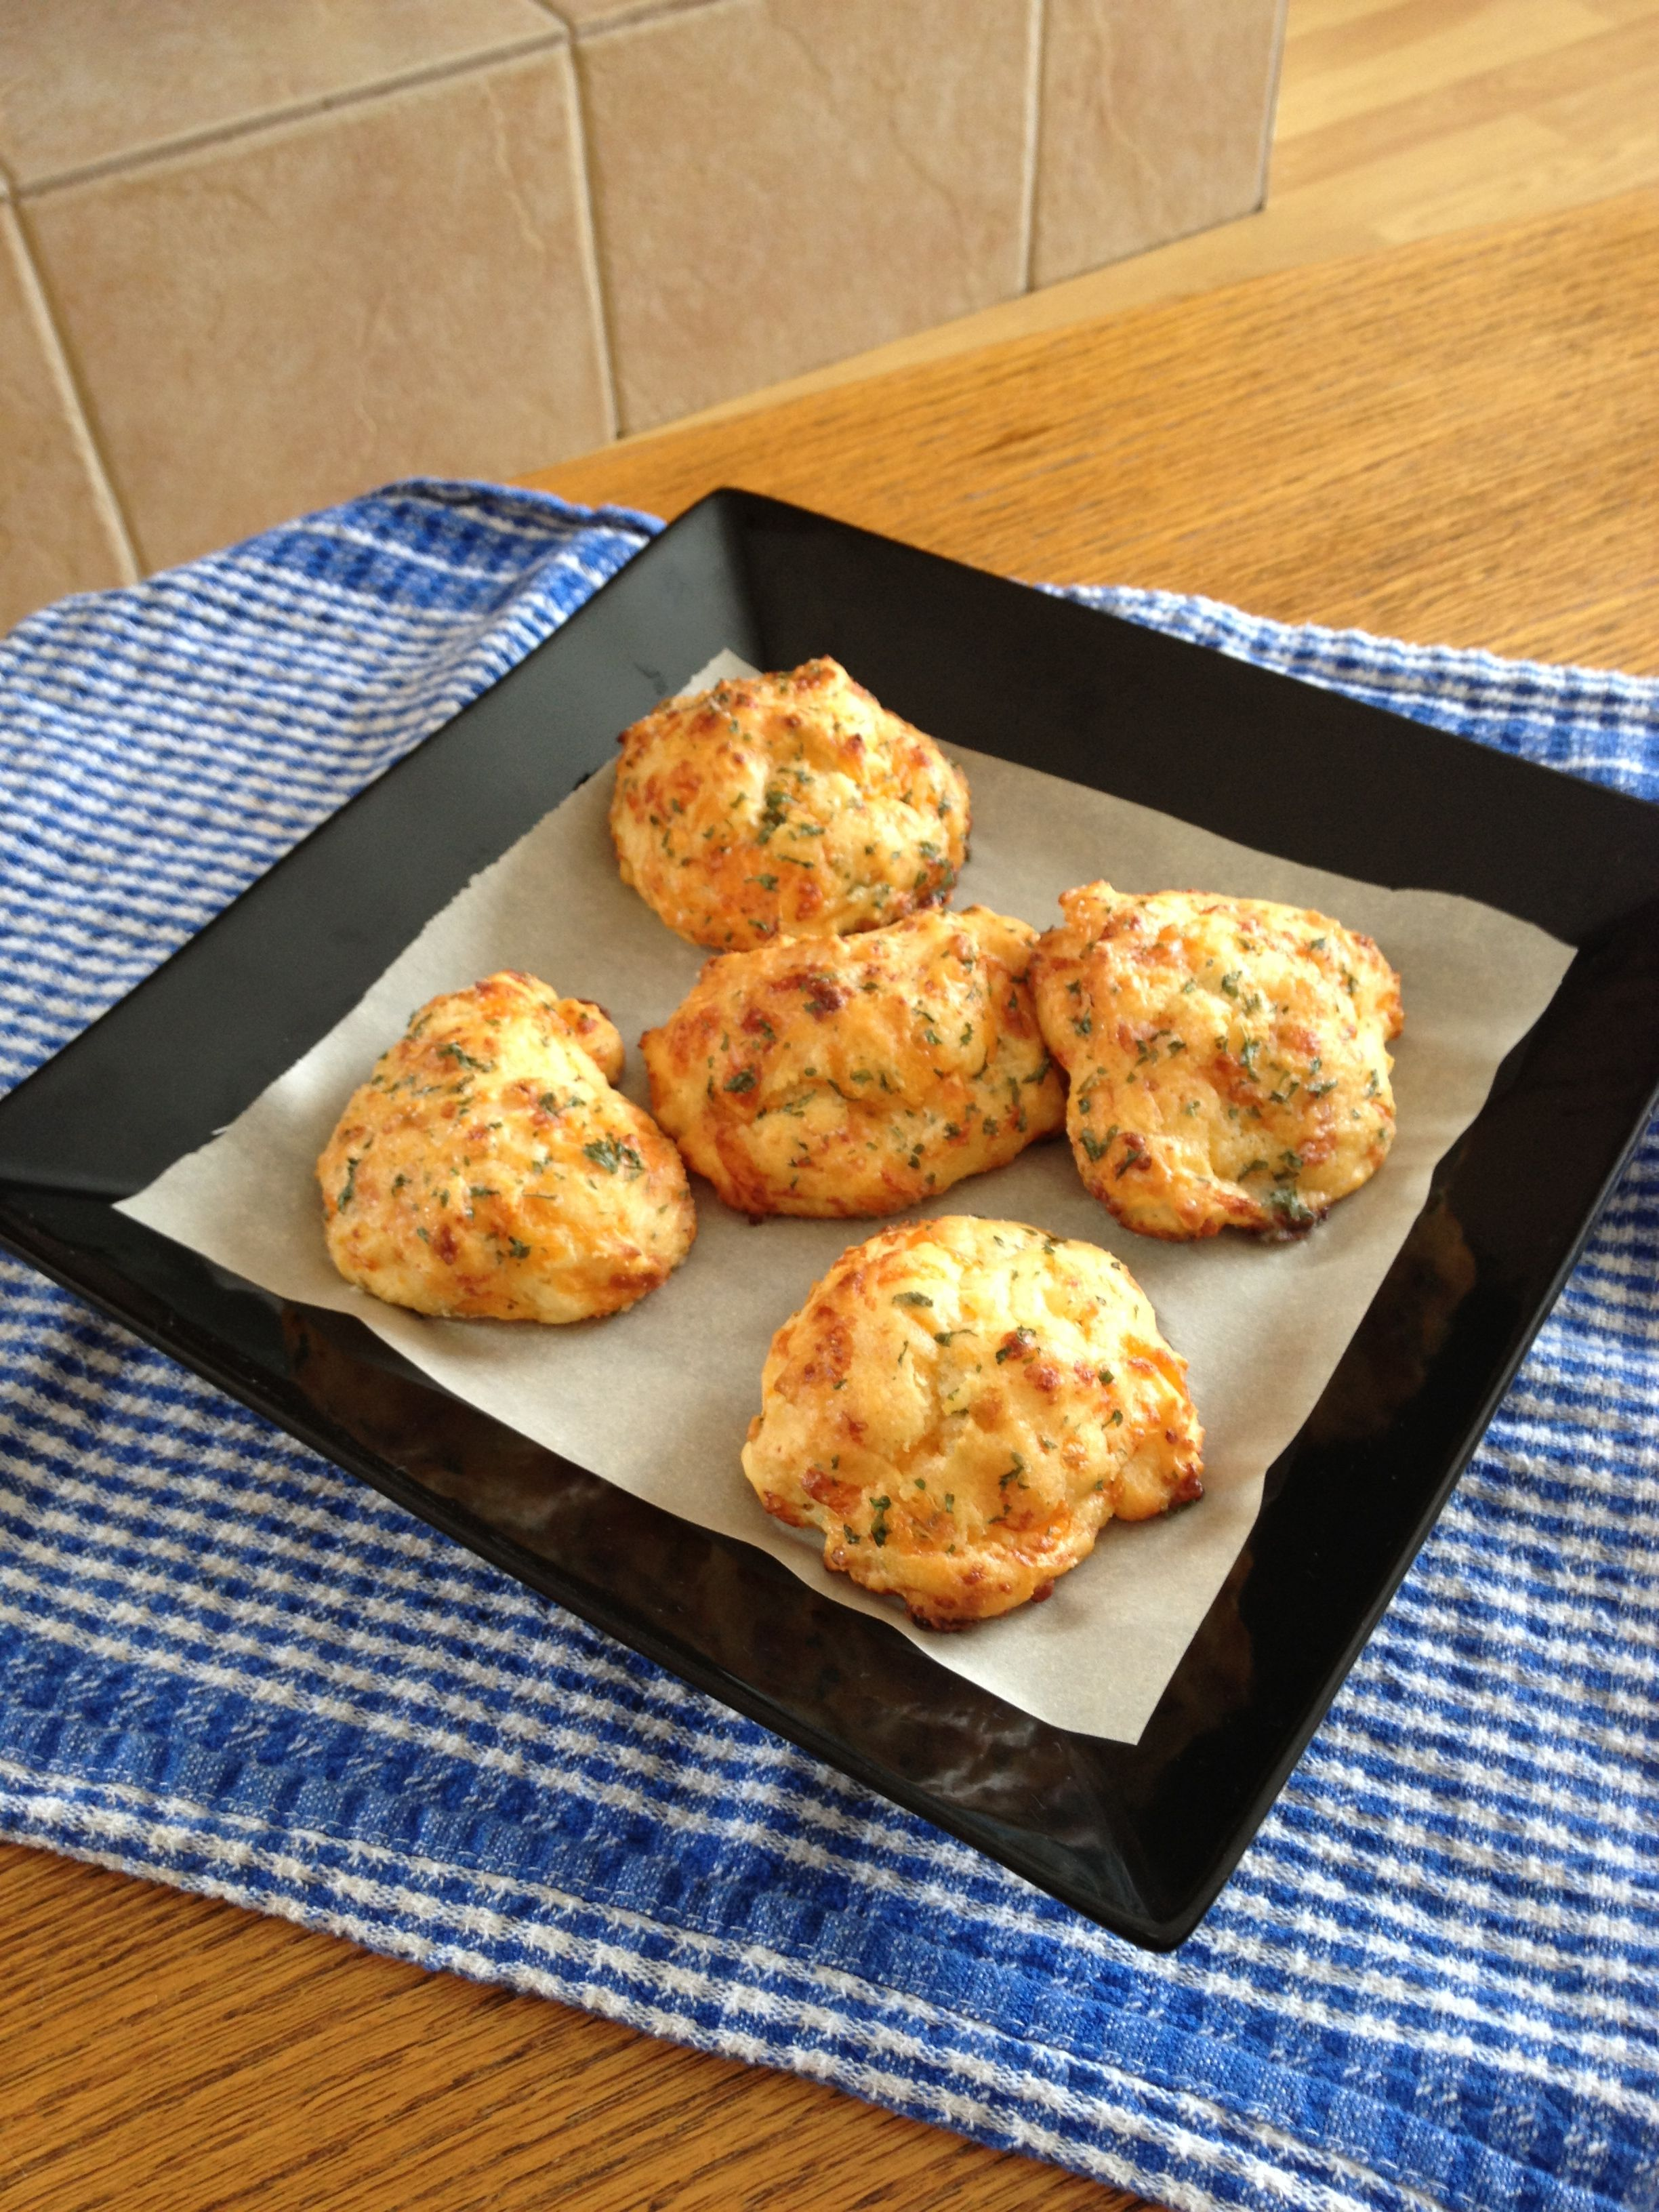 Copy cat Red Lobster biscuits - totally time 20 minutes. Ingredients 2 cups  bid quick